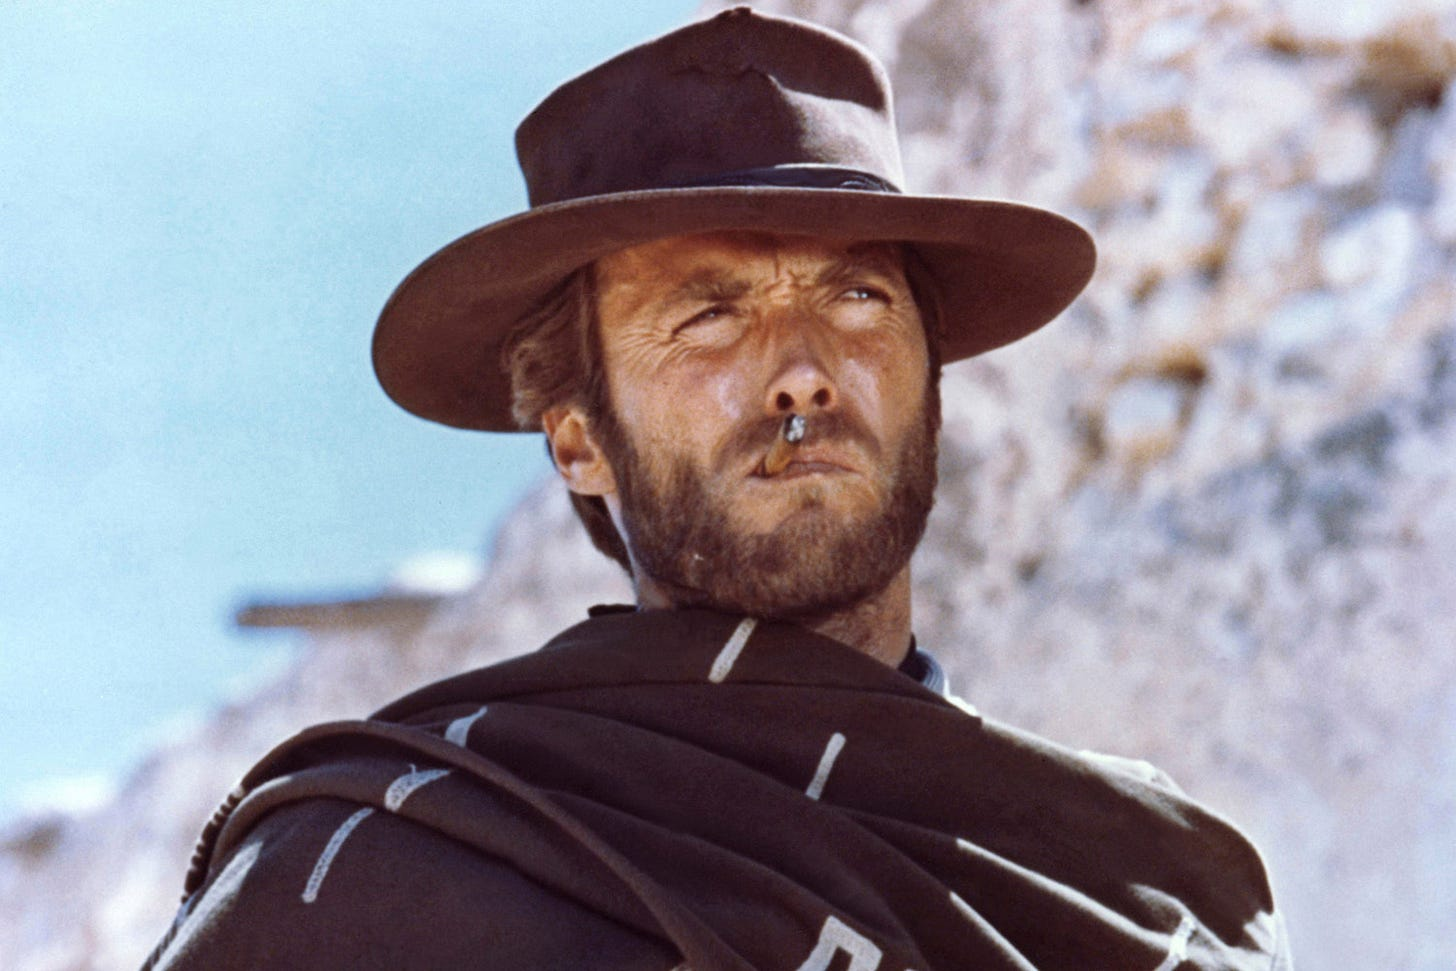 Clint Eastwood movies: What has the actor been in?